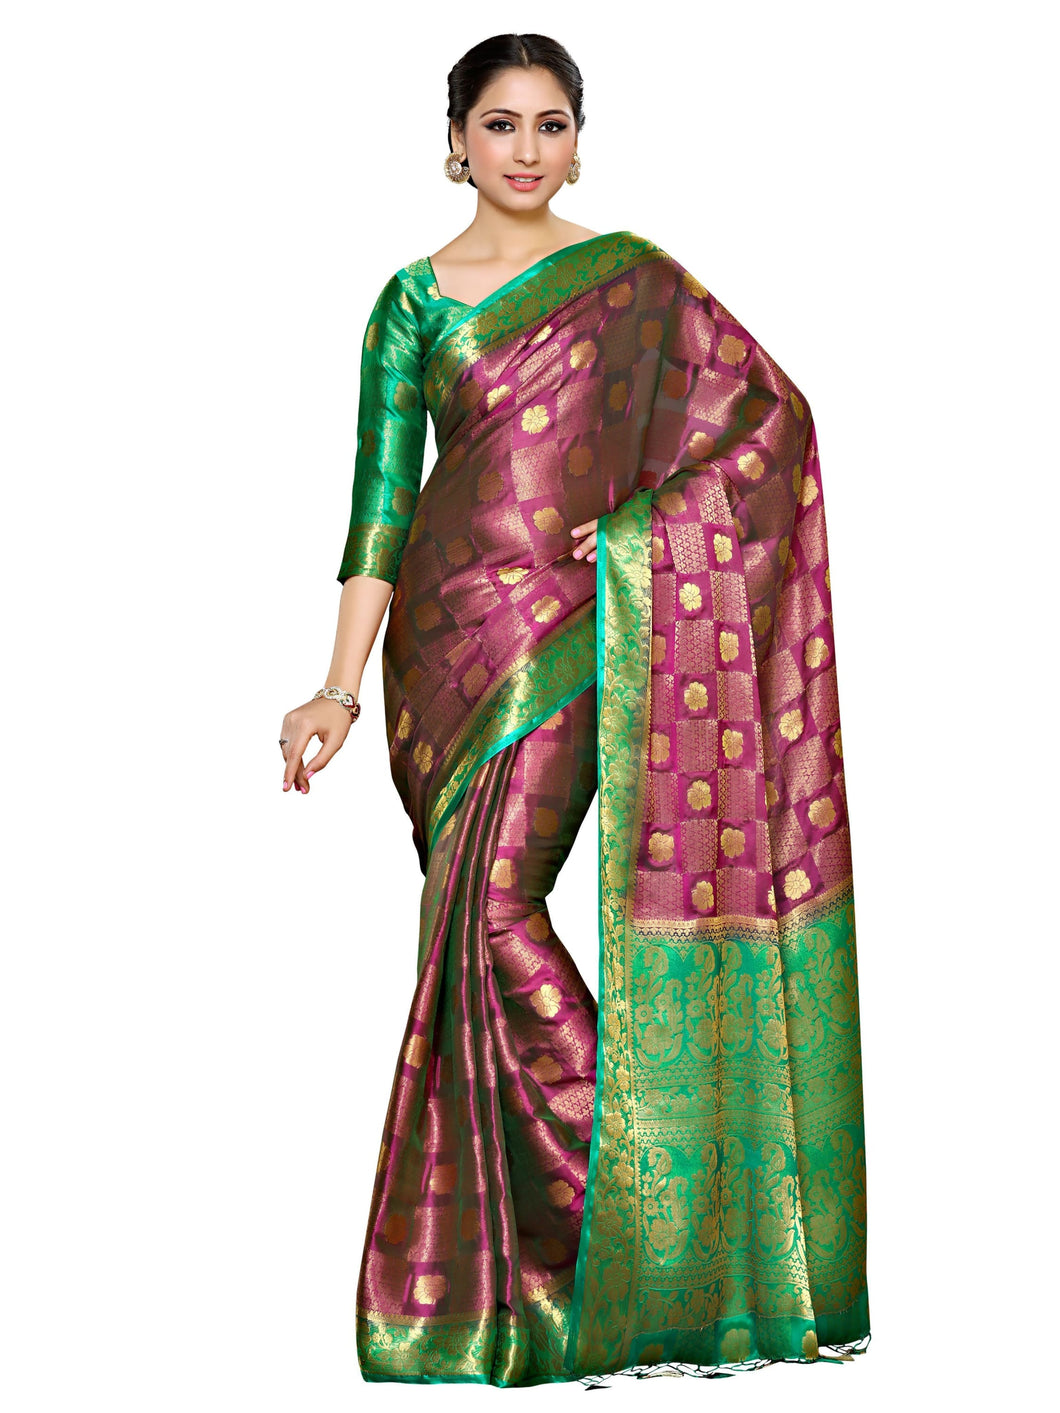 MIMOSA Flower Design Chiffon Saree with Blouse in Color Dark Pink (4046-221-gr-2d-rni-rma) - kupindaindia